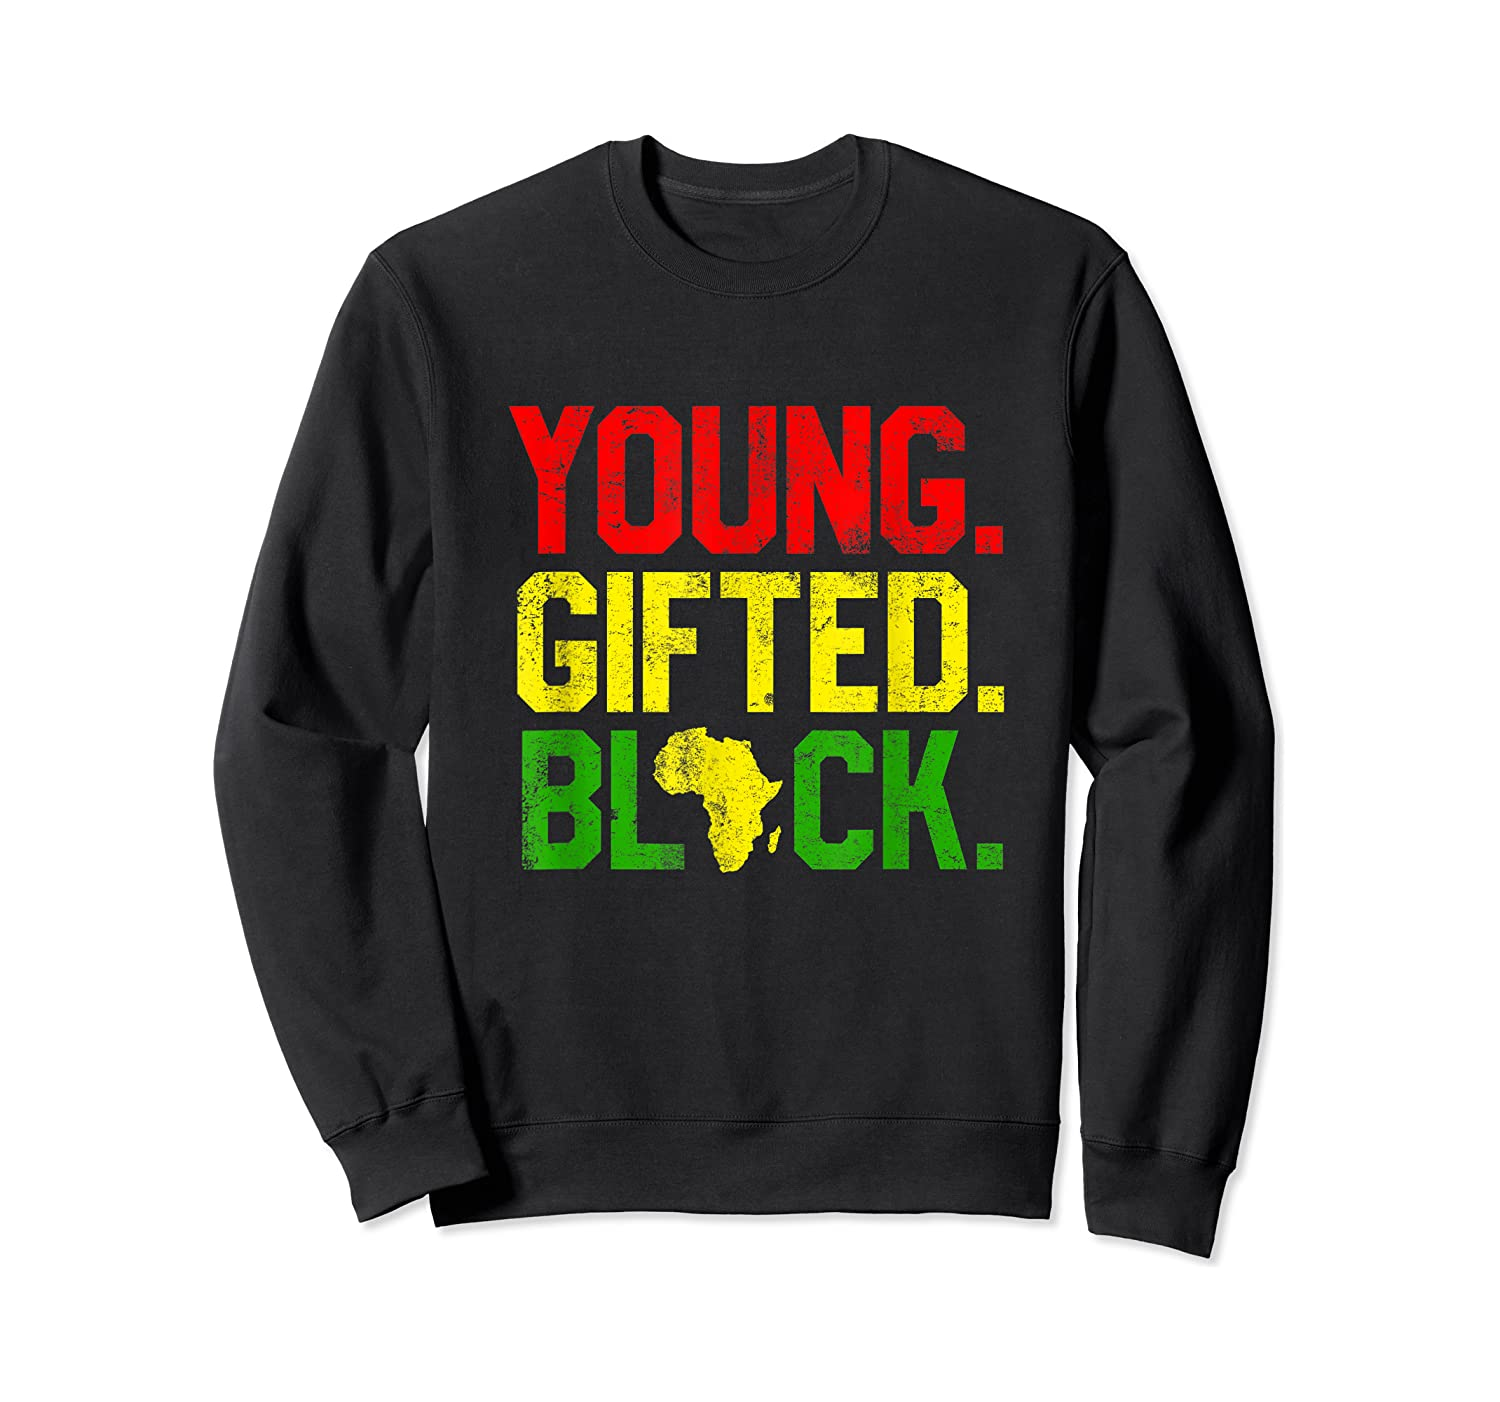 Gifted Black History Month African American Gifts Shirts Crewneck Sweater